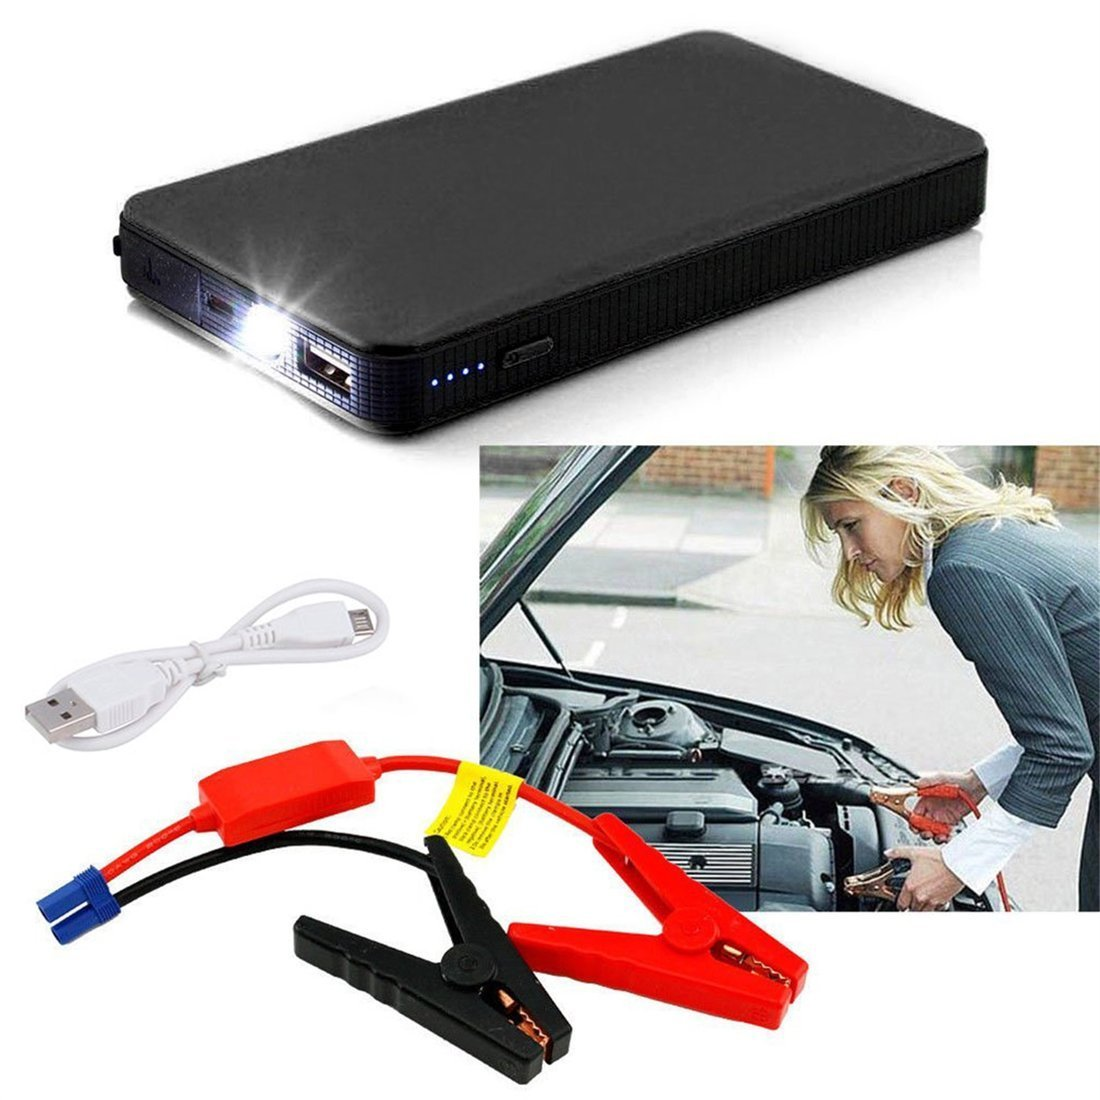 12V 20000mAh Multifunctional Car Jump Starter Power Booster Battery Charger Dailyinshop